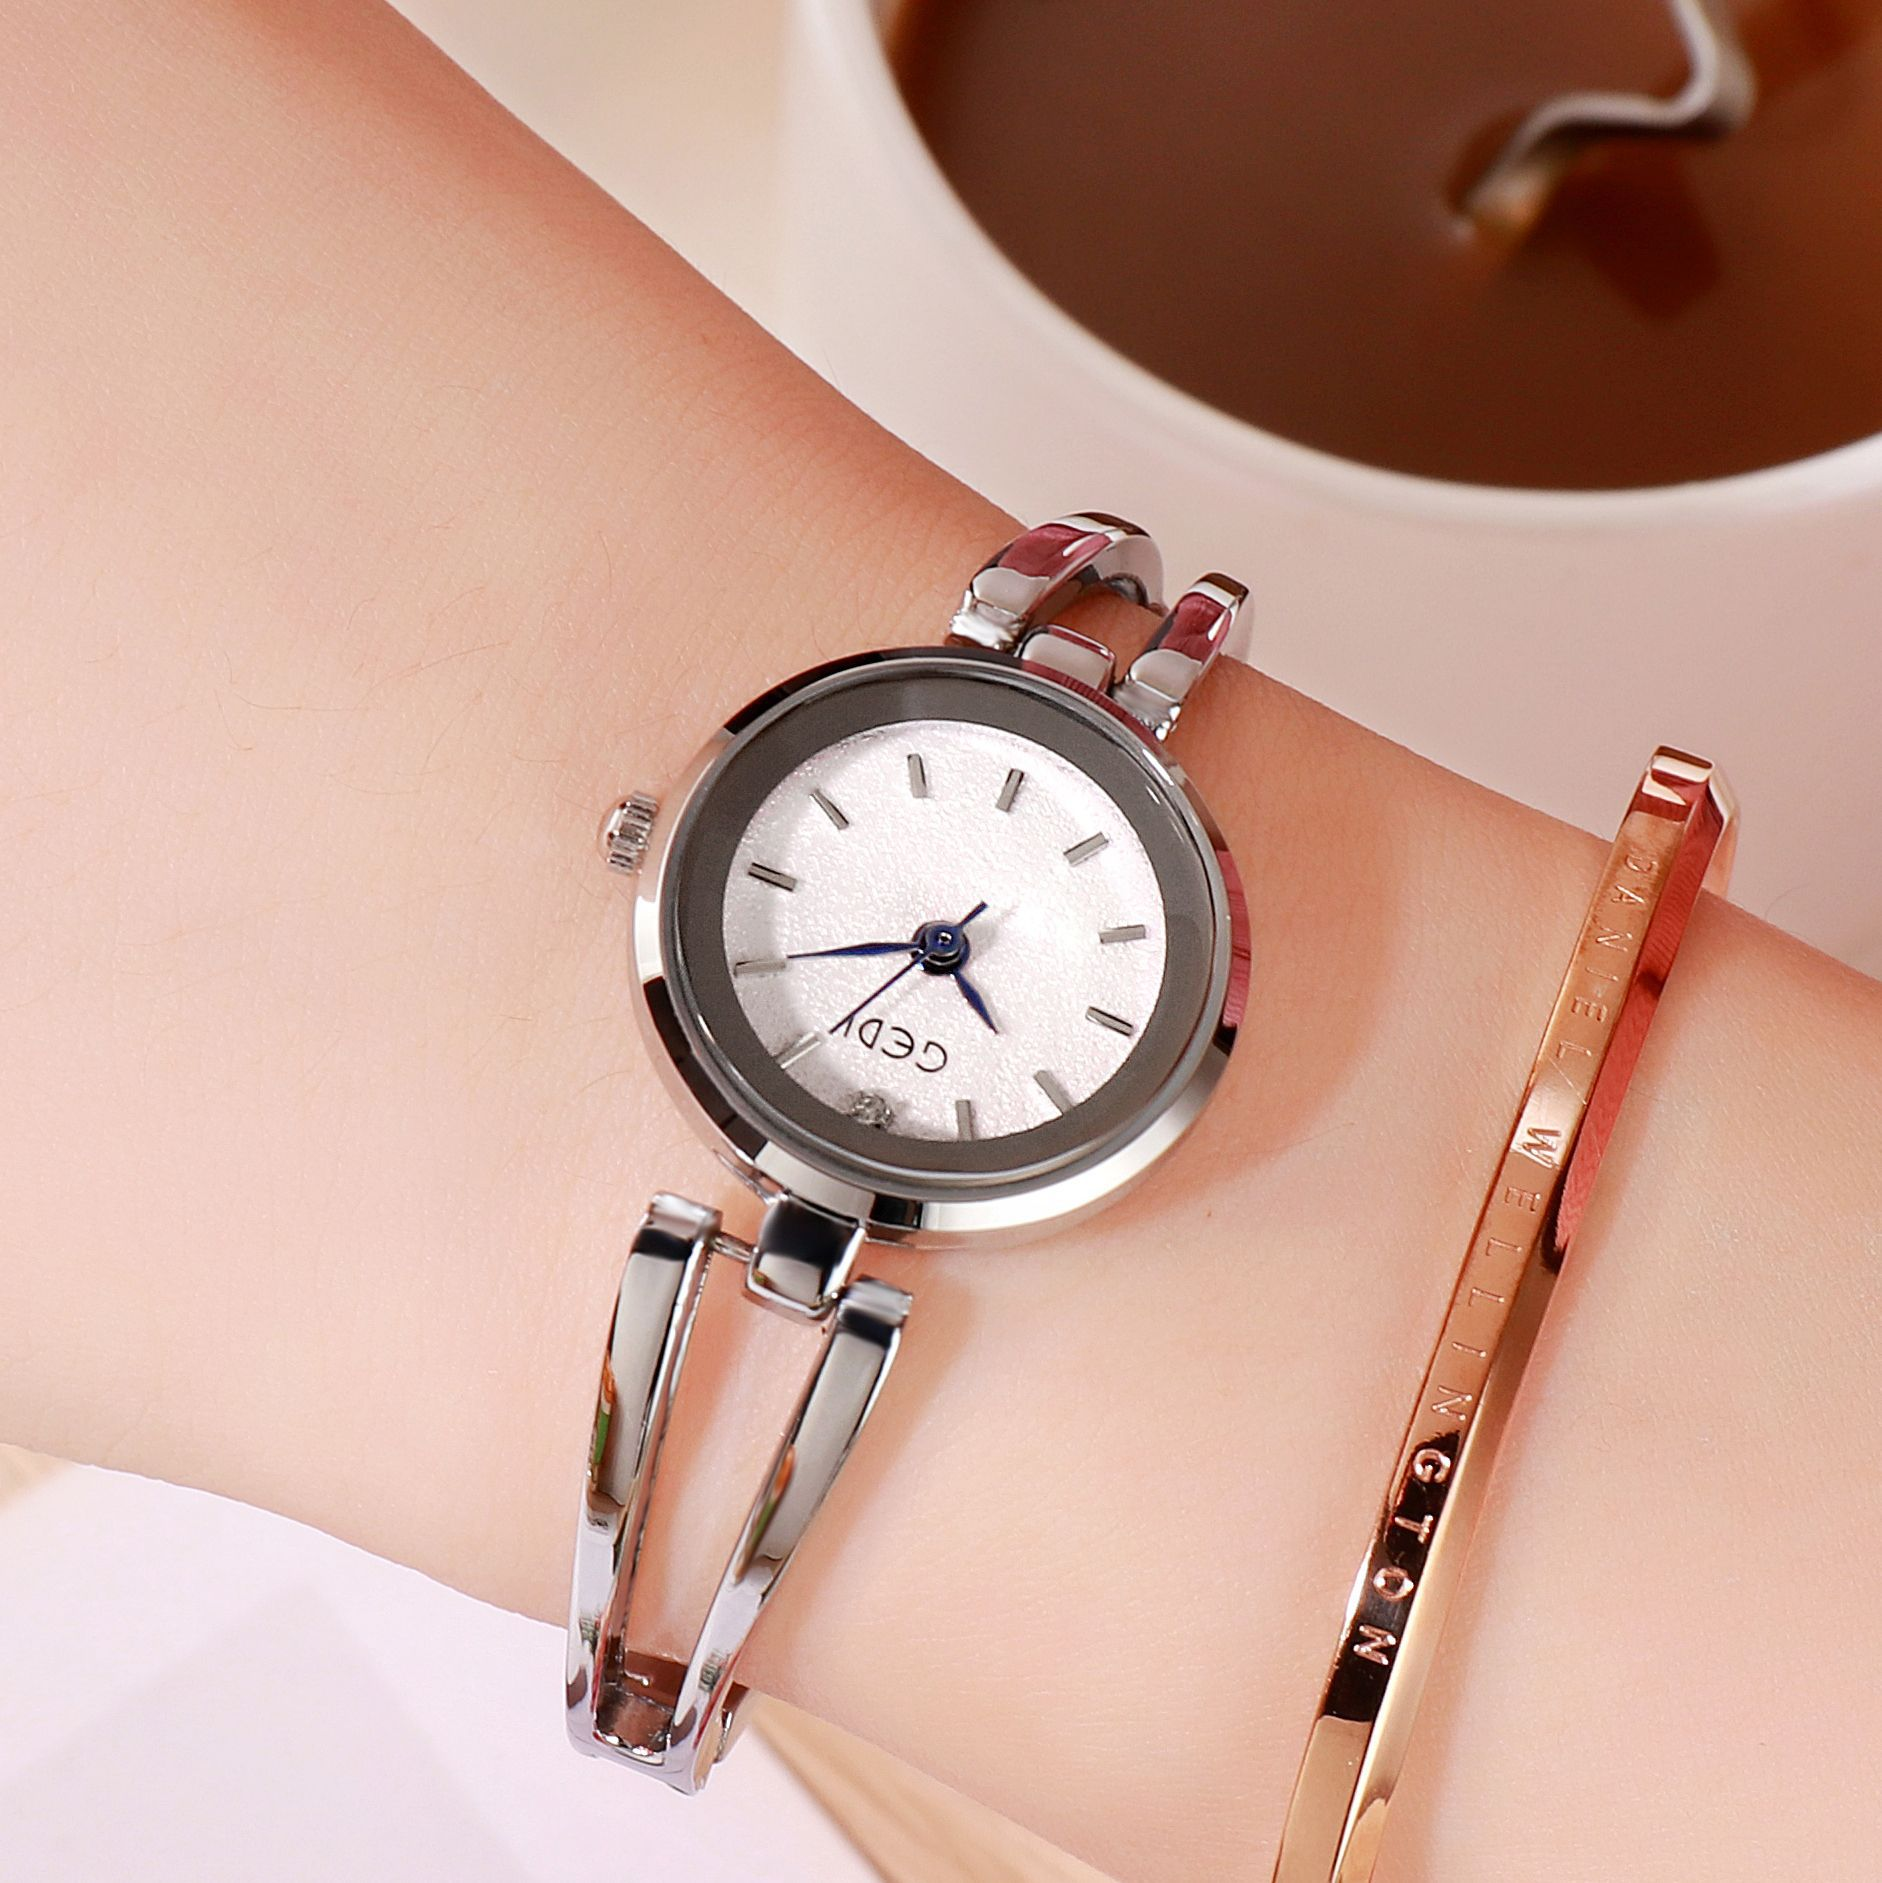 Women Stainless Steel Waterproof Bracelet Watch with Spiral Case for Casual Office  Silver shell white dial